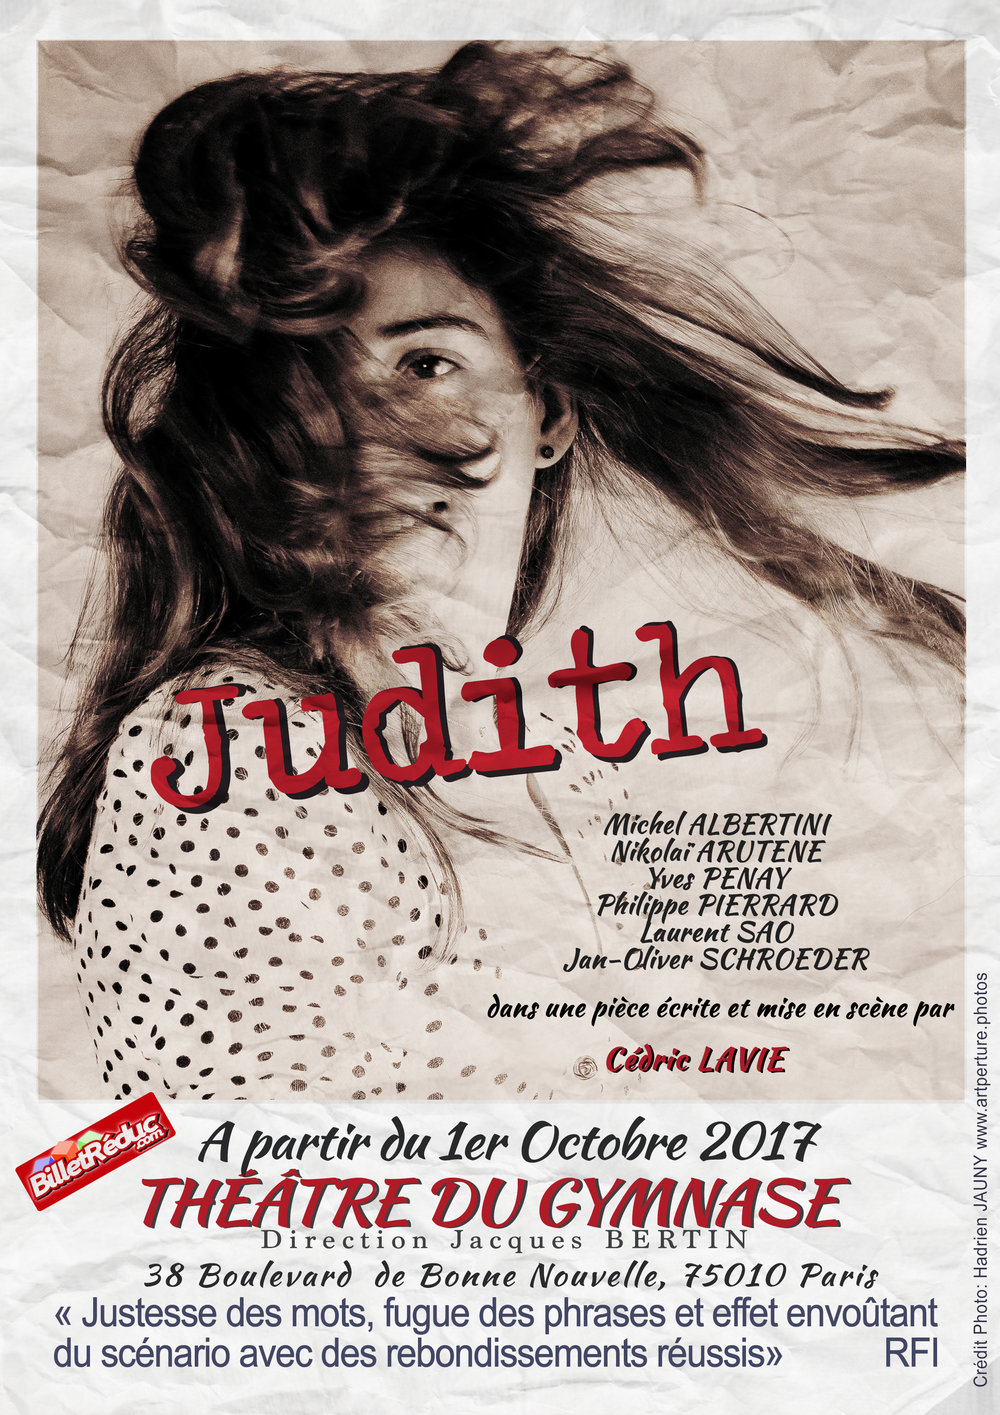 Judith Affiche Th dy Gymnase Sept 17.jpg